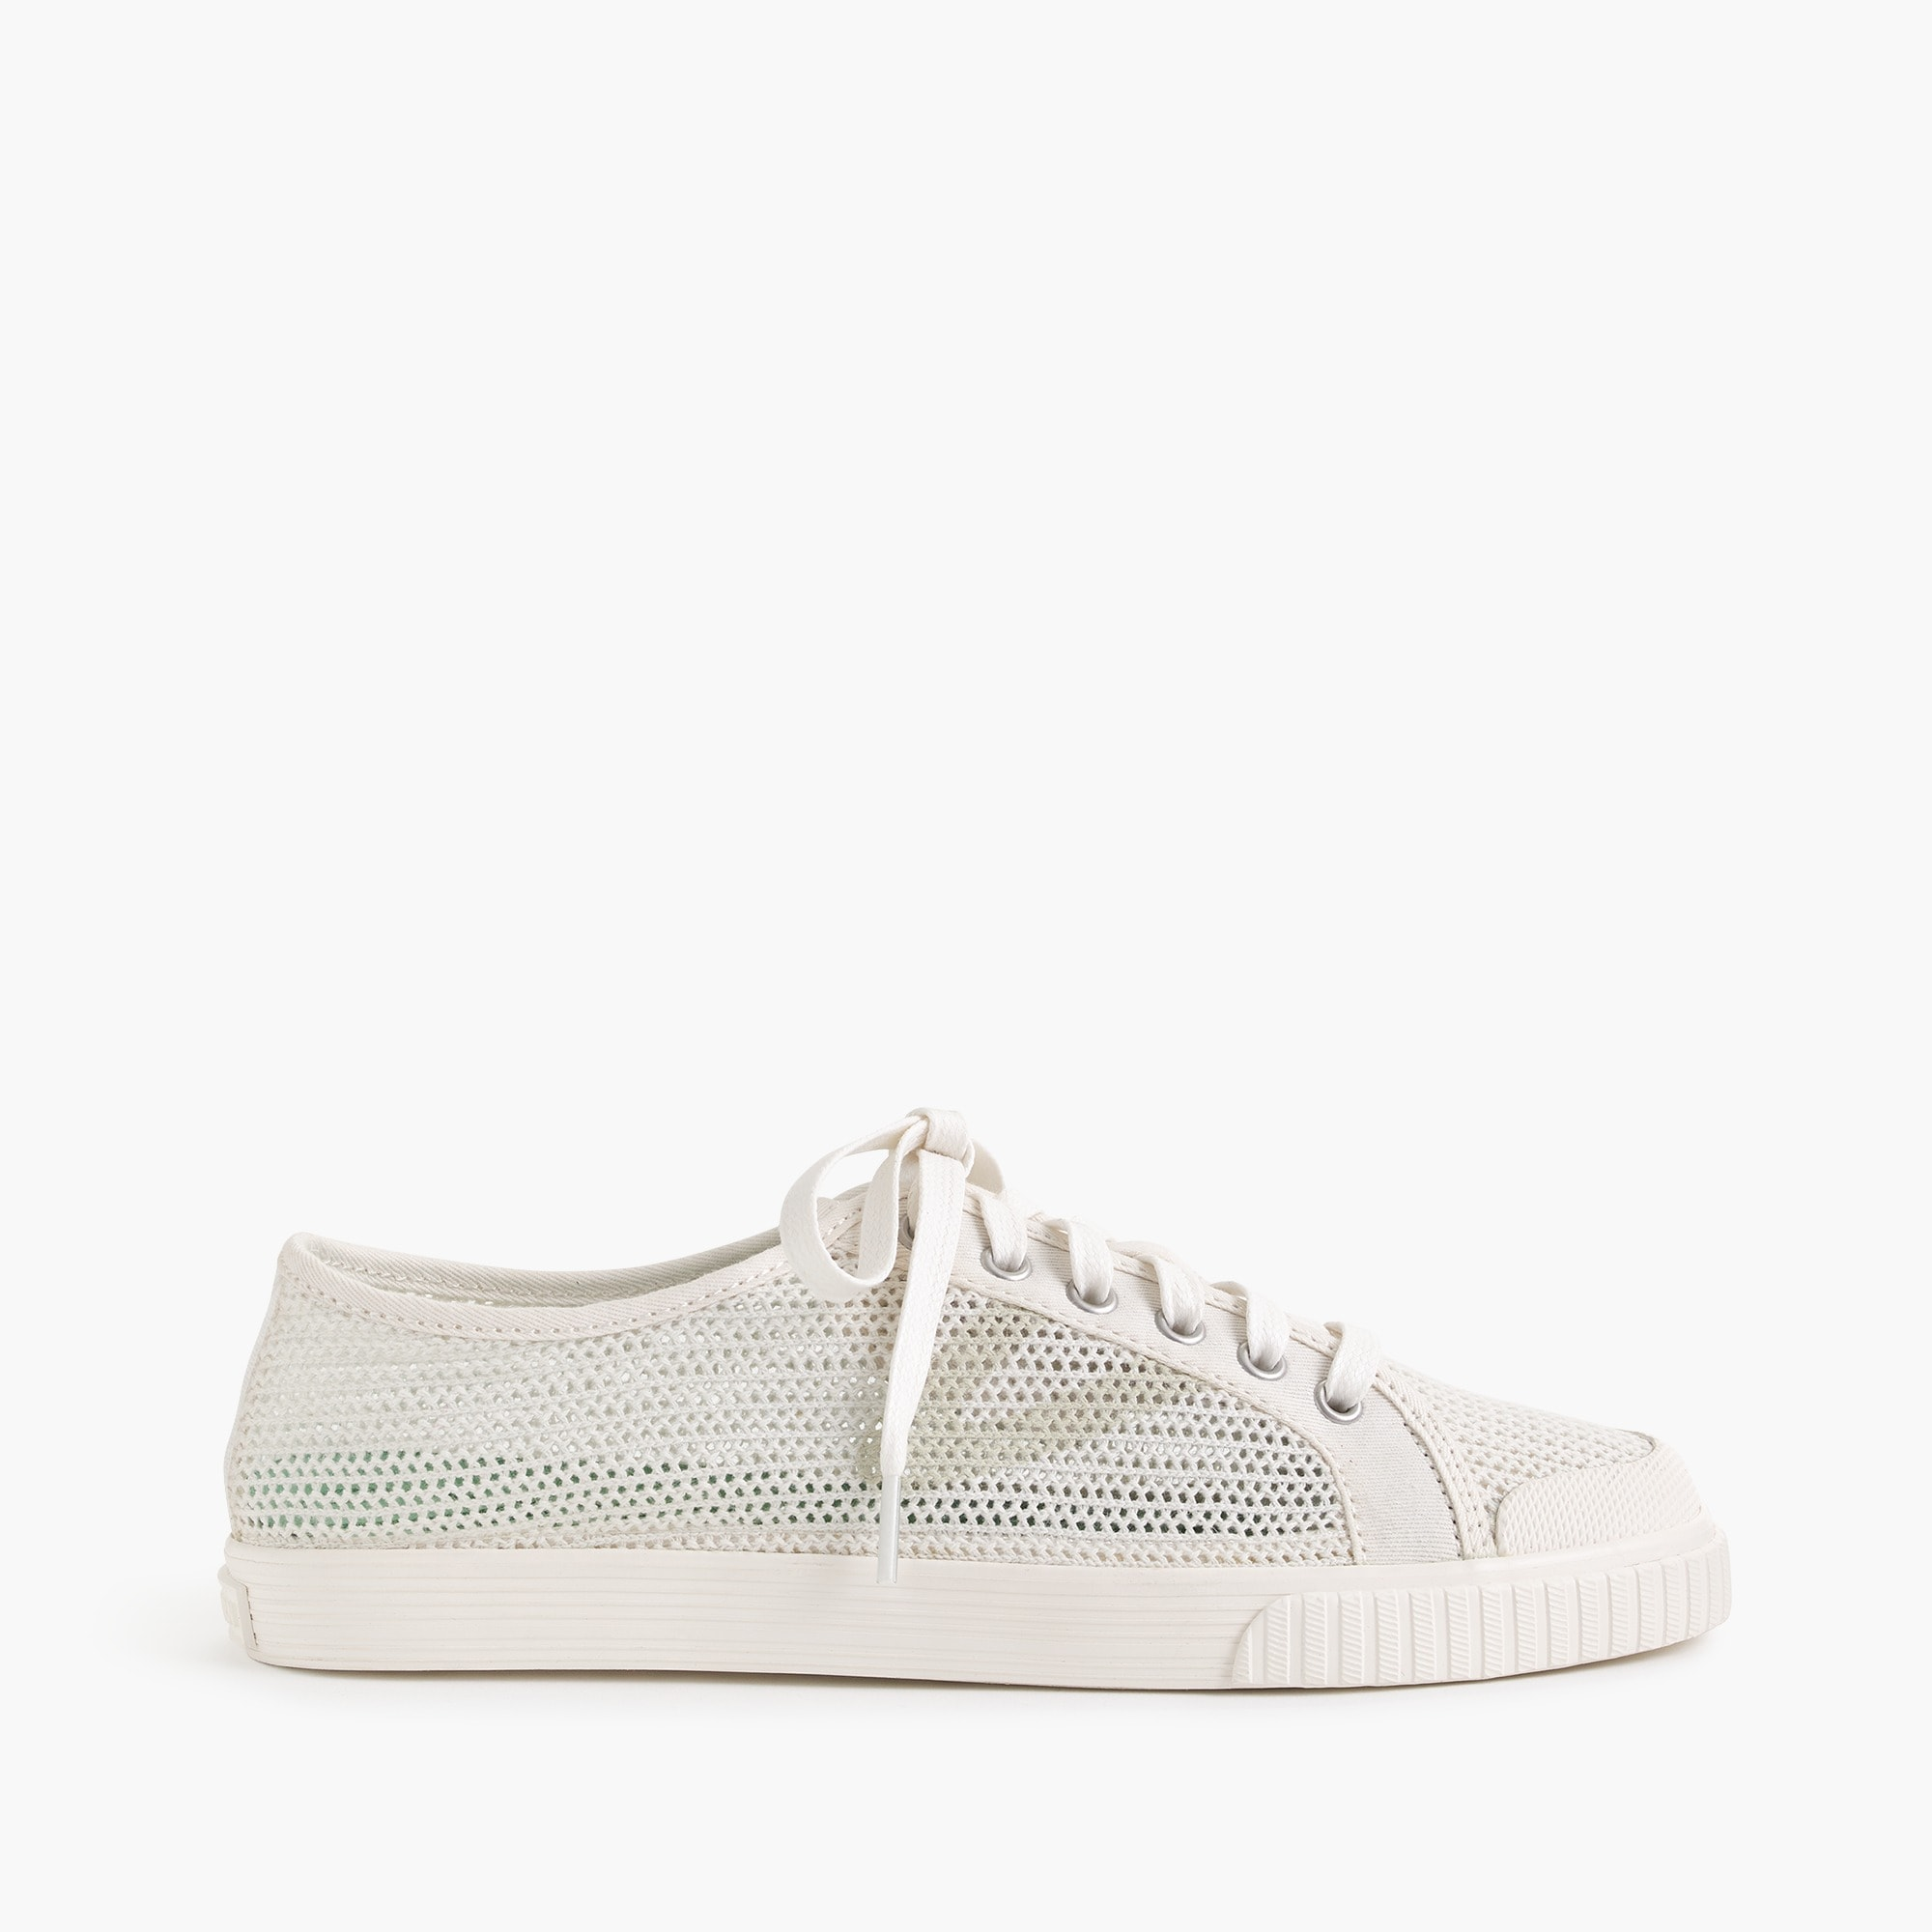 Image 3 for Women's Tretorn® Tournament Net for J.Crew sneakers